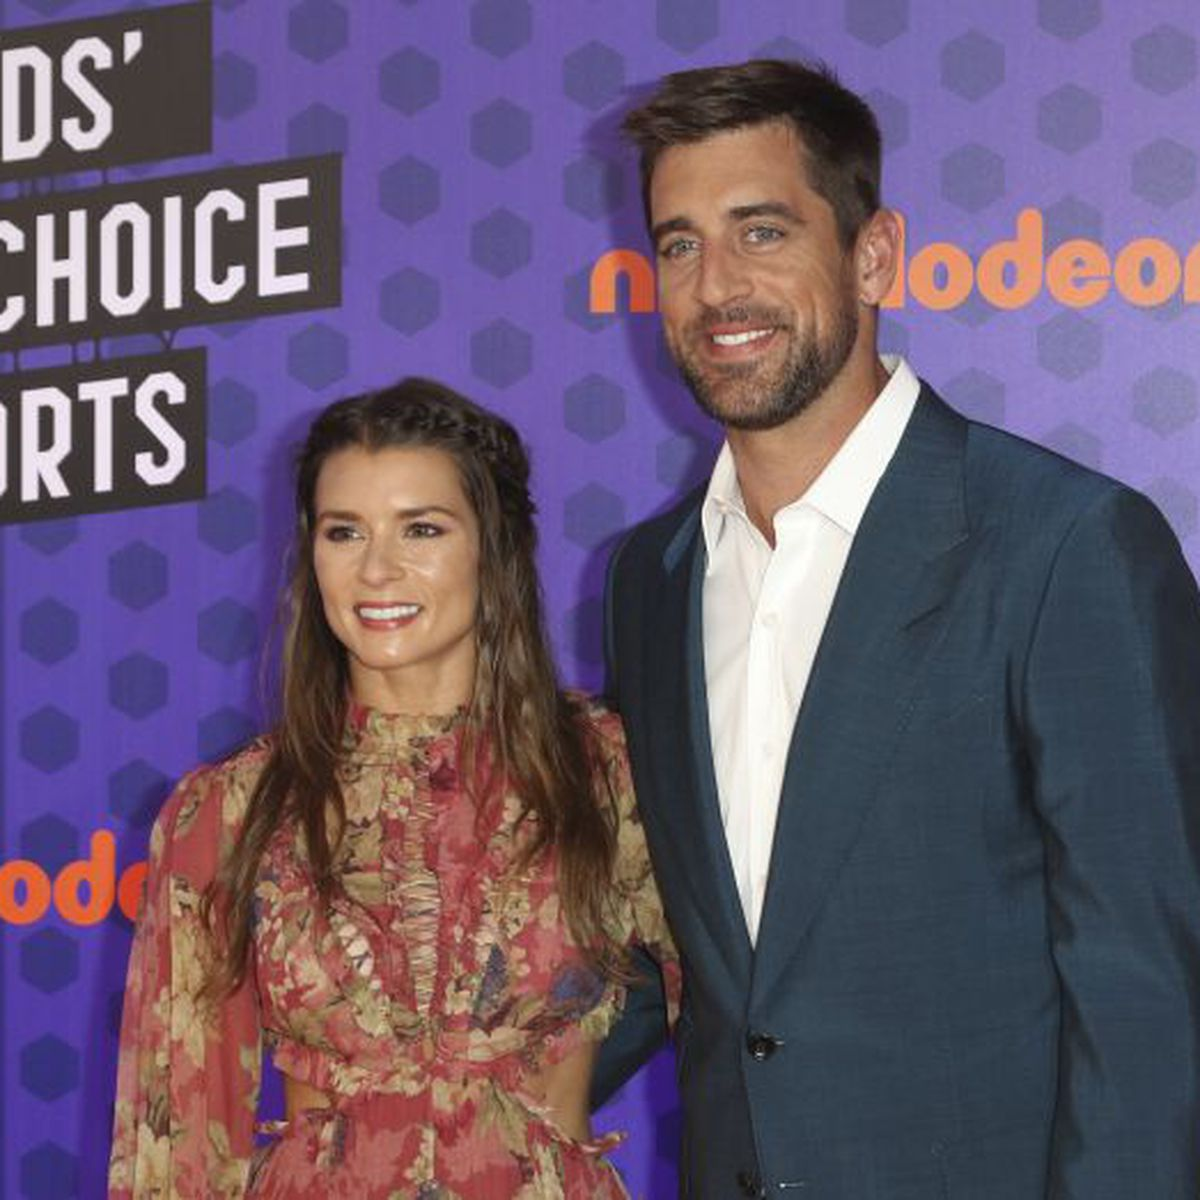 Reports Aaron Rodgers And Danica Patrick Break Up After Two Years Together